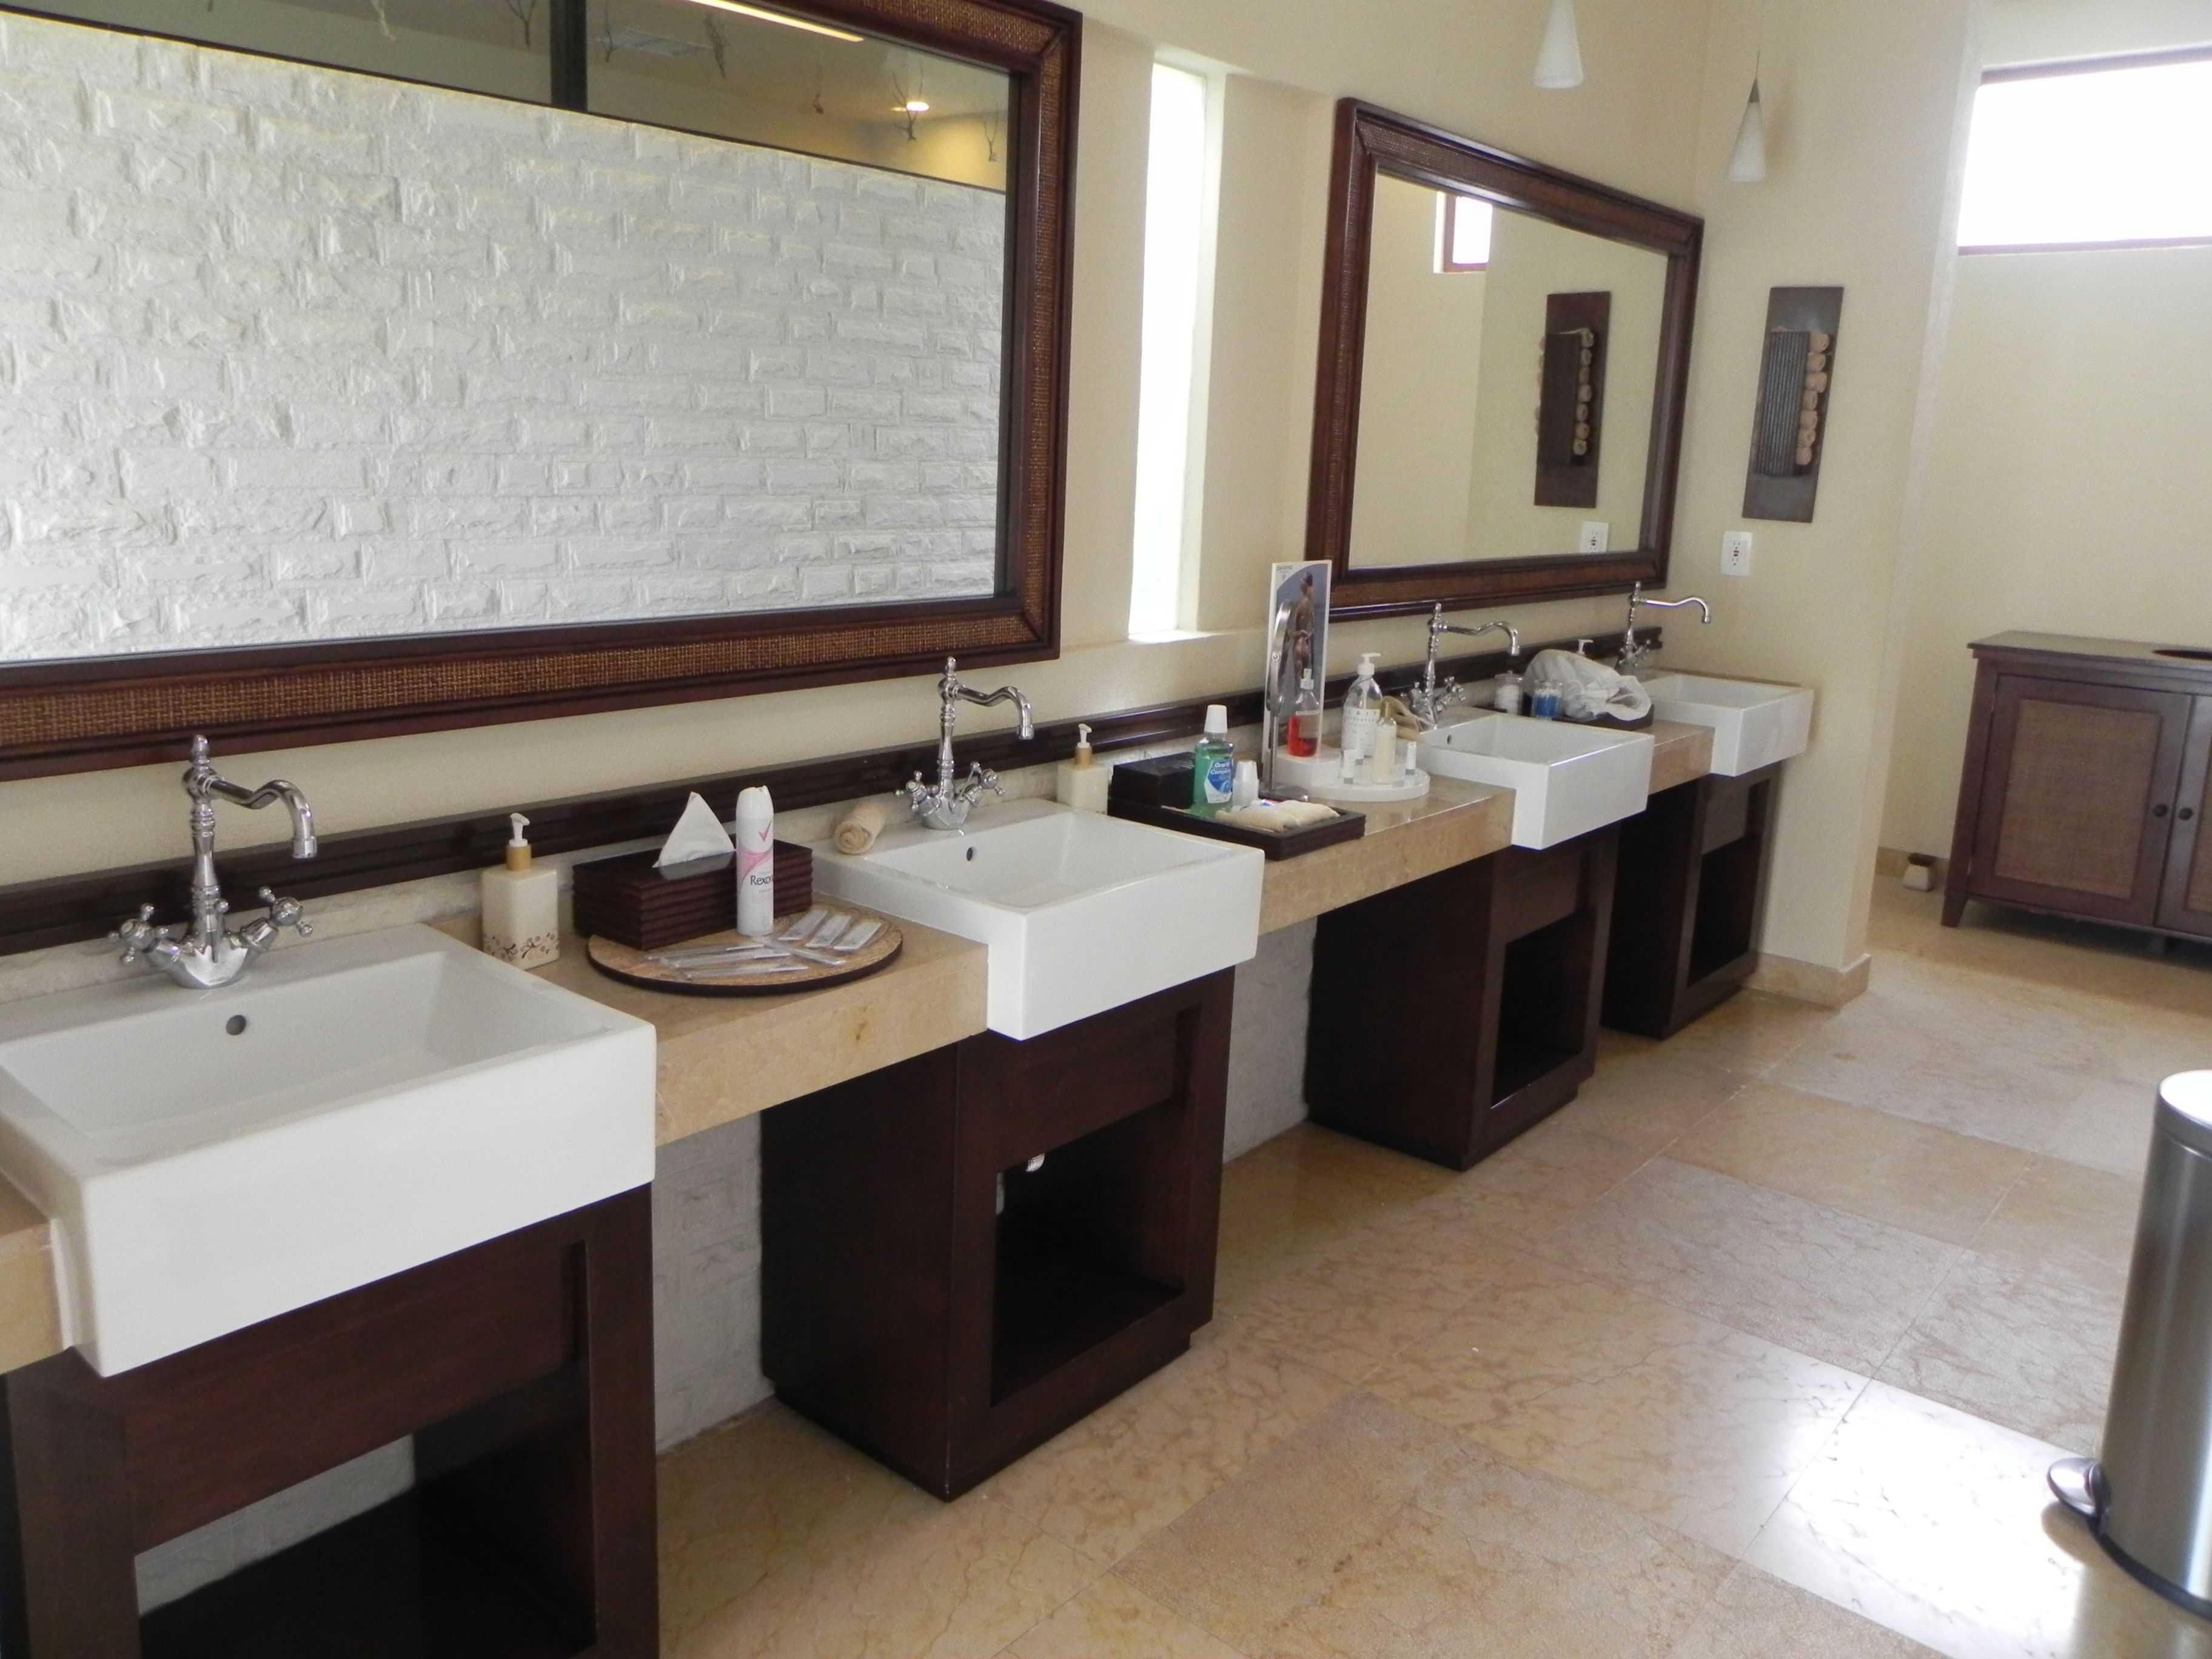 Fully Stocked Vanities For Commercial Bathroom Commercial - Commercial bathroom sinks and vanities